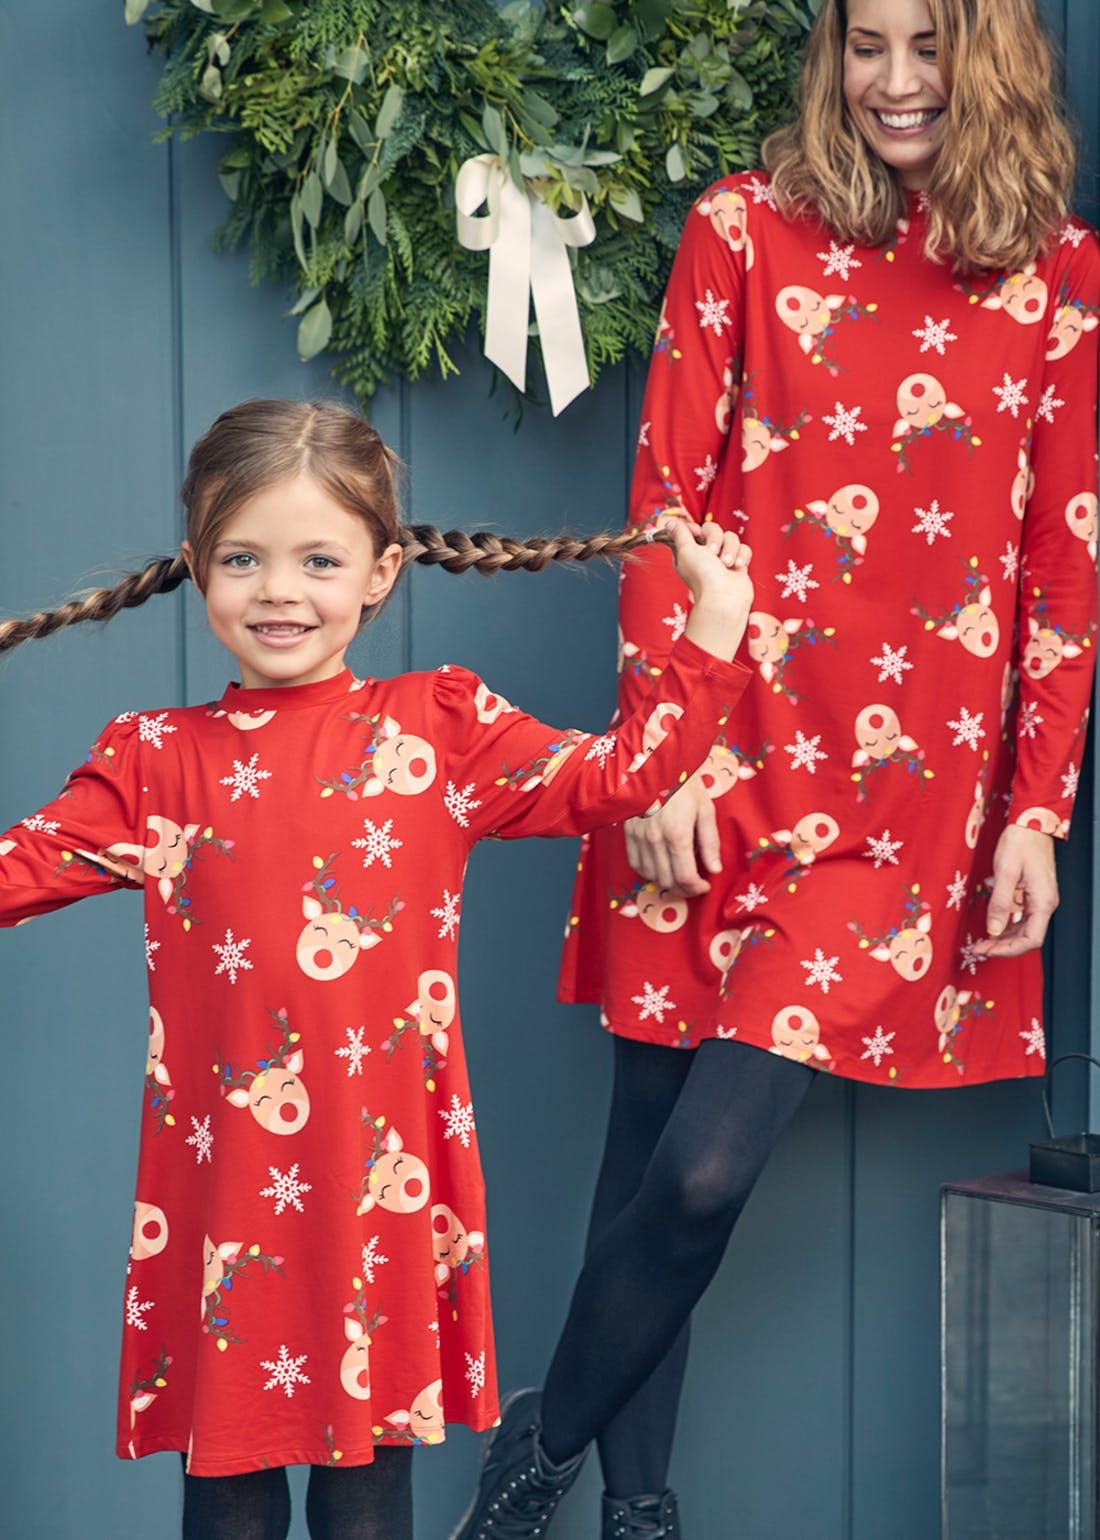 Red Christmas Reindeer Swing Dress